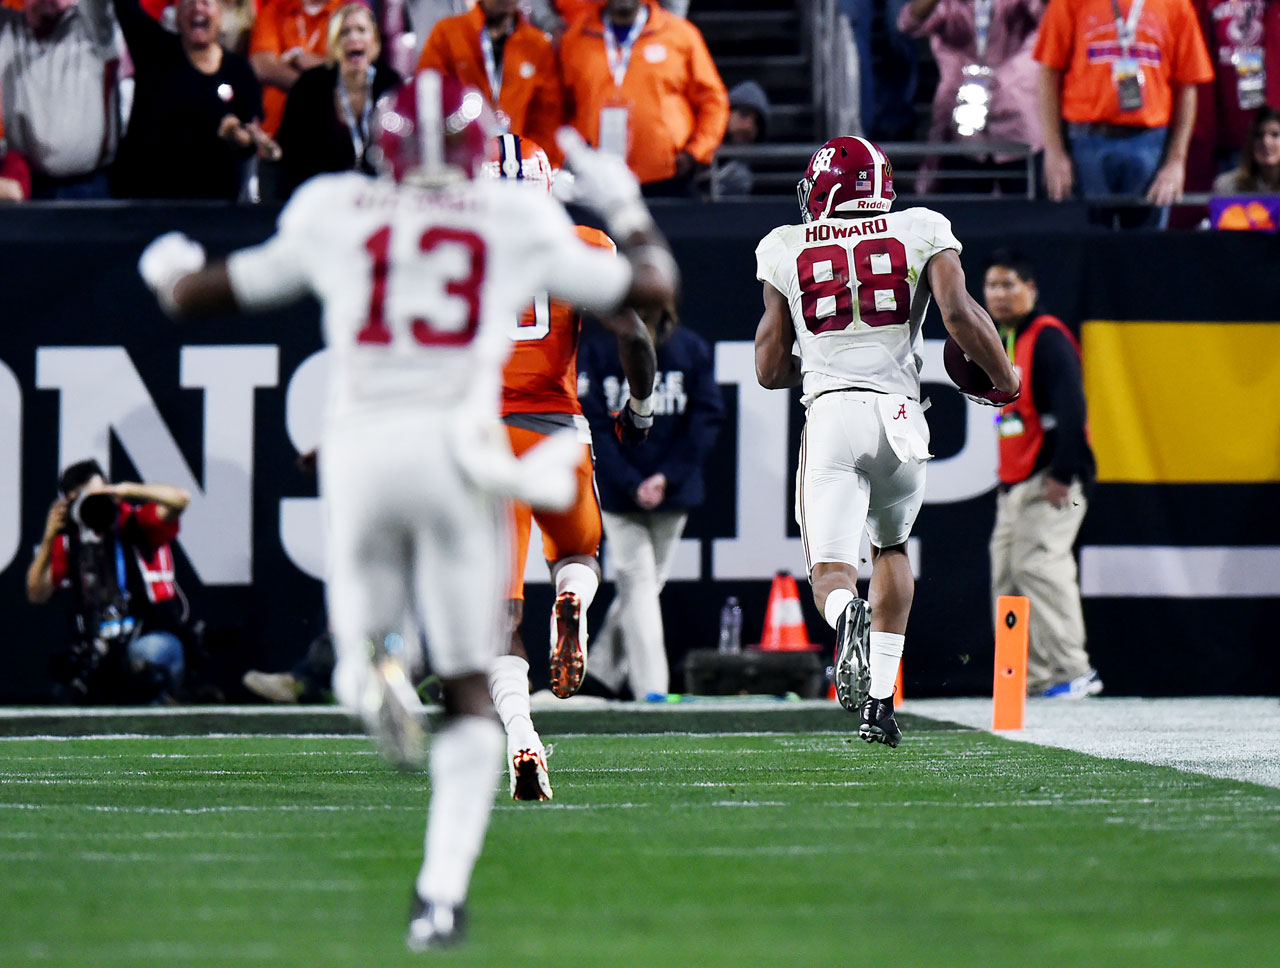 O.J. Howard was so alone on the route that the Alabama sideline was celebrating before he even caught the ball.